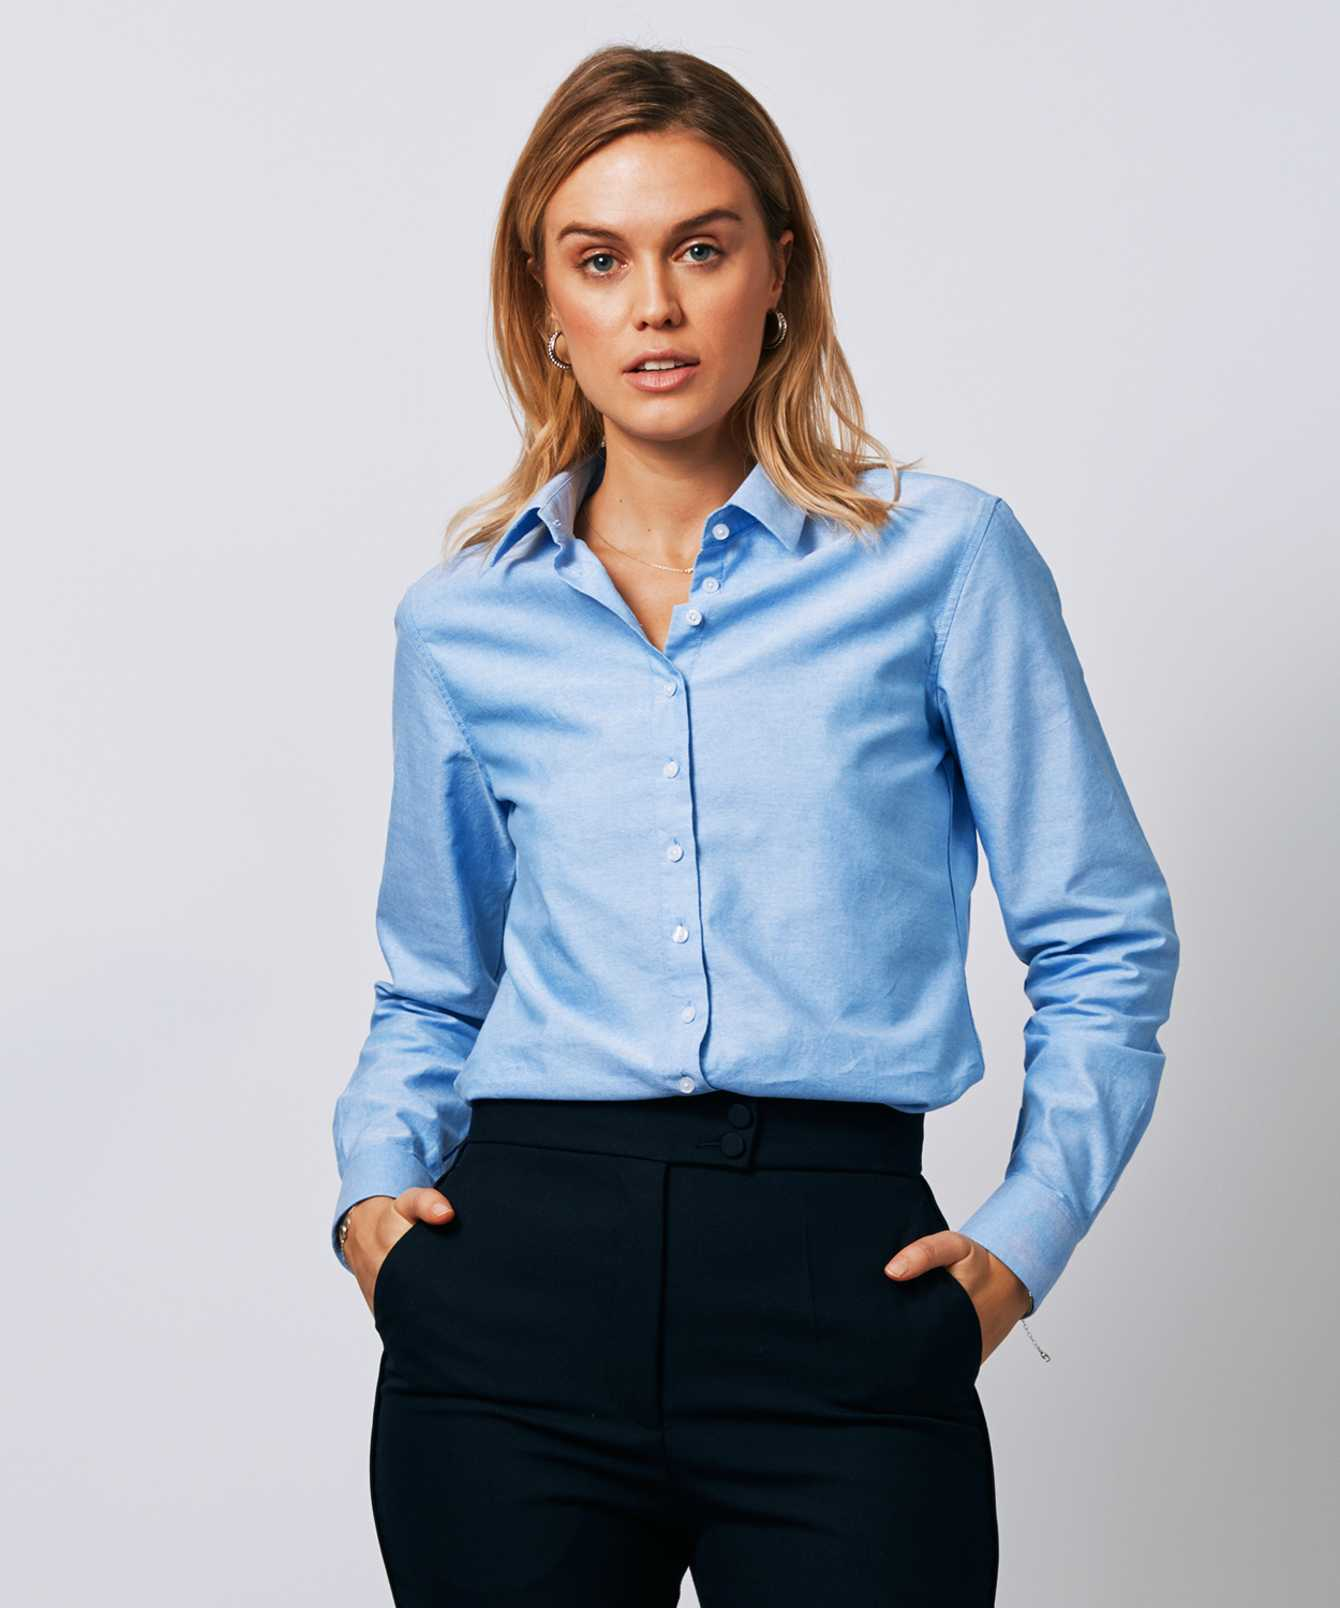 Shirt Tilde Hampton Oxford Blue The Shirt Factory